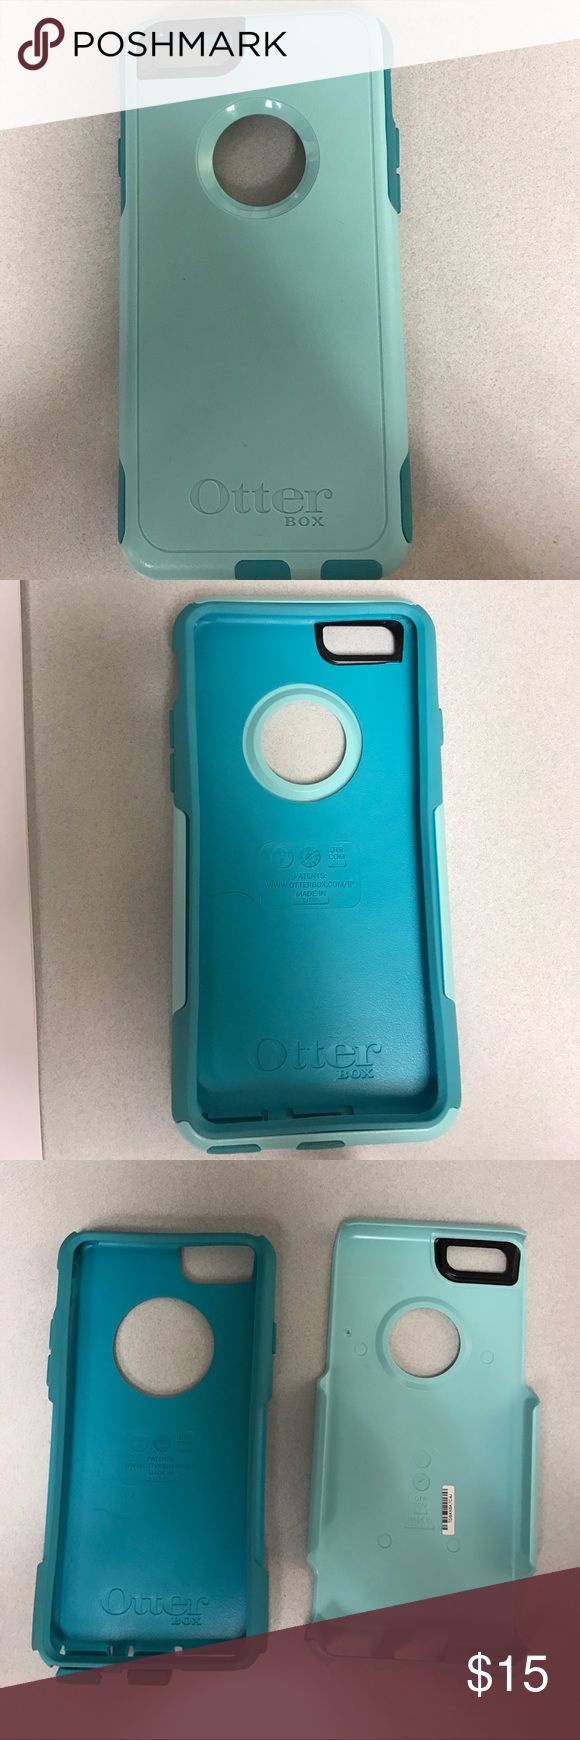 Otter Box commuter series for iPhone 6/6s Otter Box commuter series phone case! Fits an iPhone 6/6s! It is in great condition! OtterBox Accessories Phone Cases